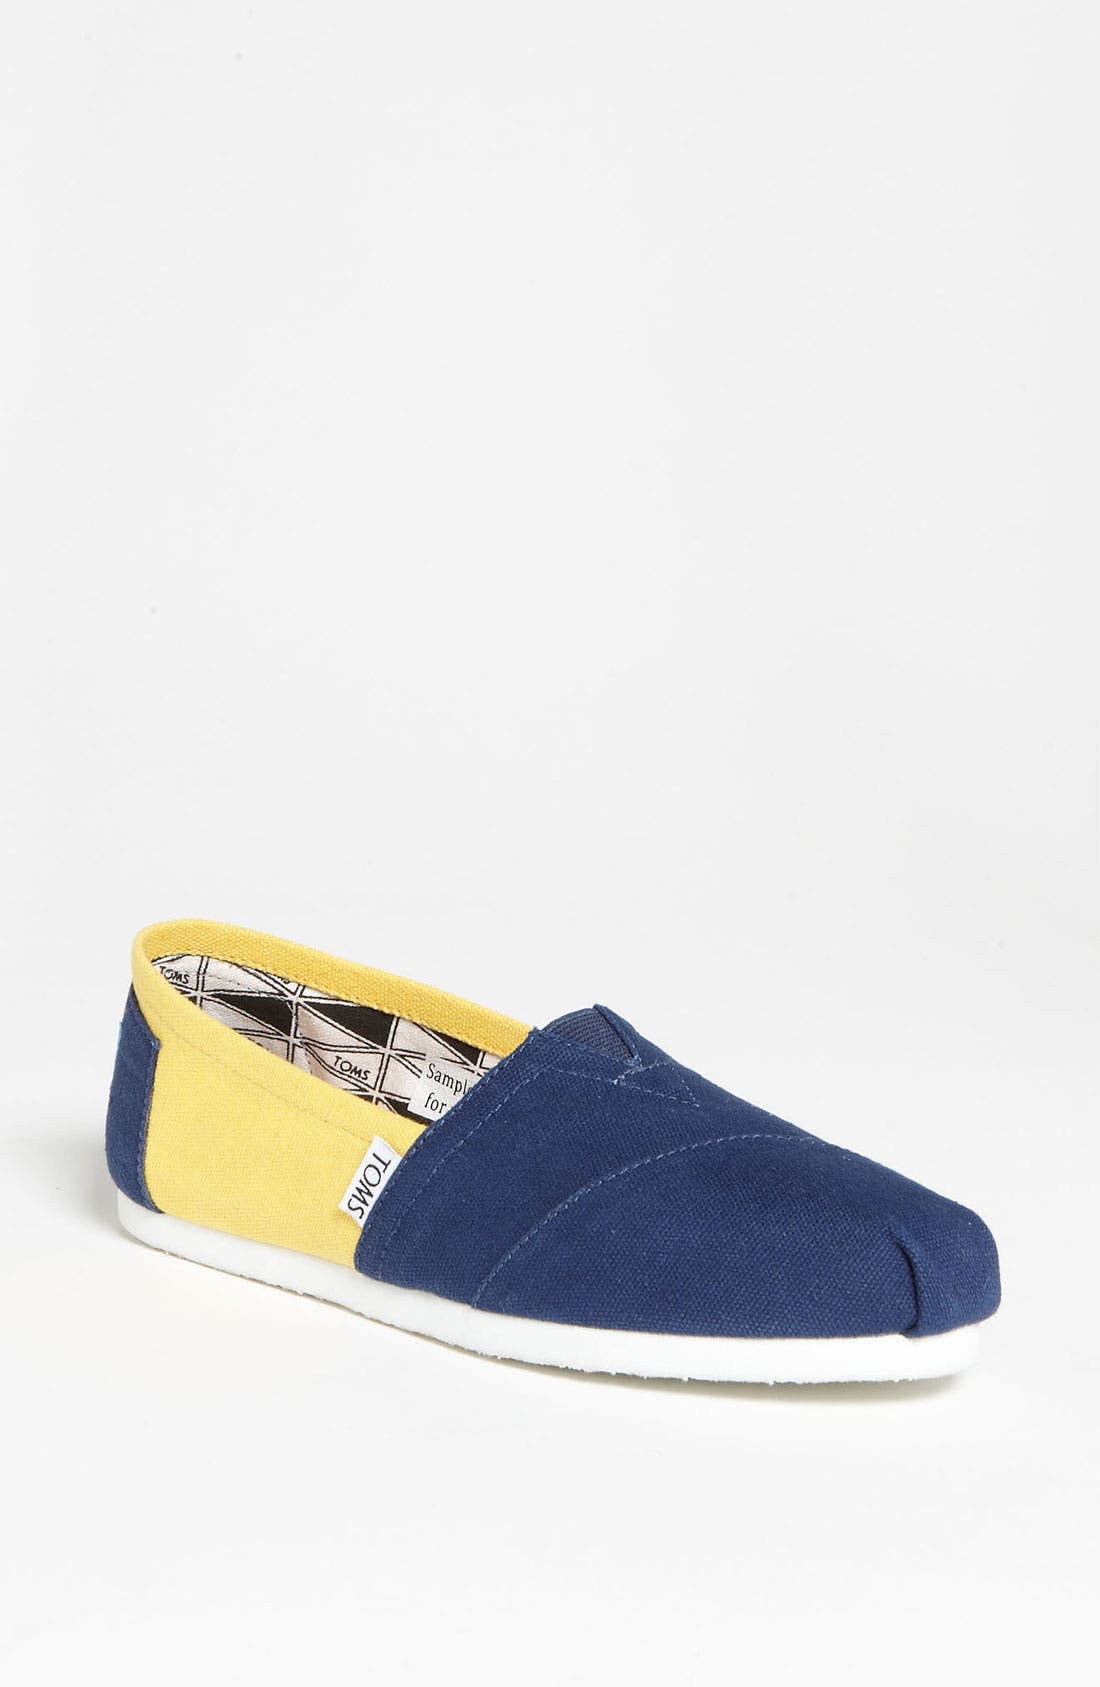 Alternate Image 1 Selected - TOMS 'Campus Classics - University of Michigan' Slip-On (Women)